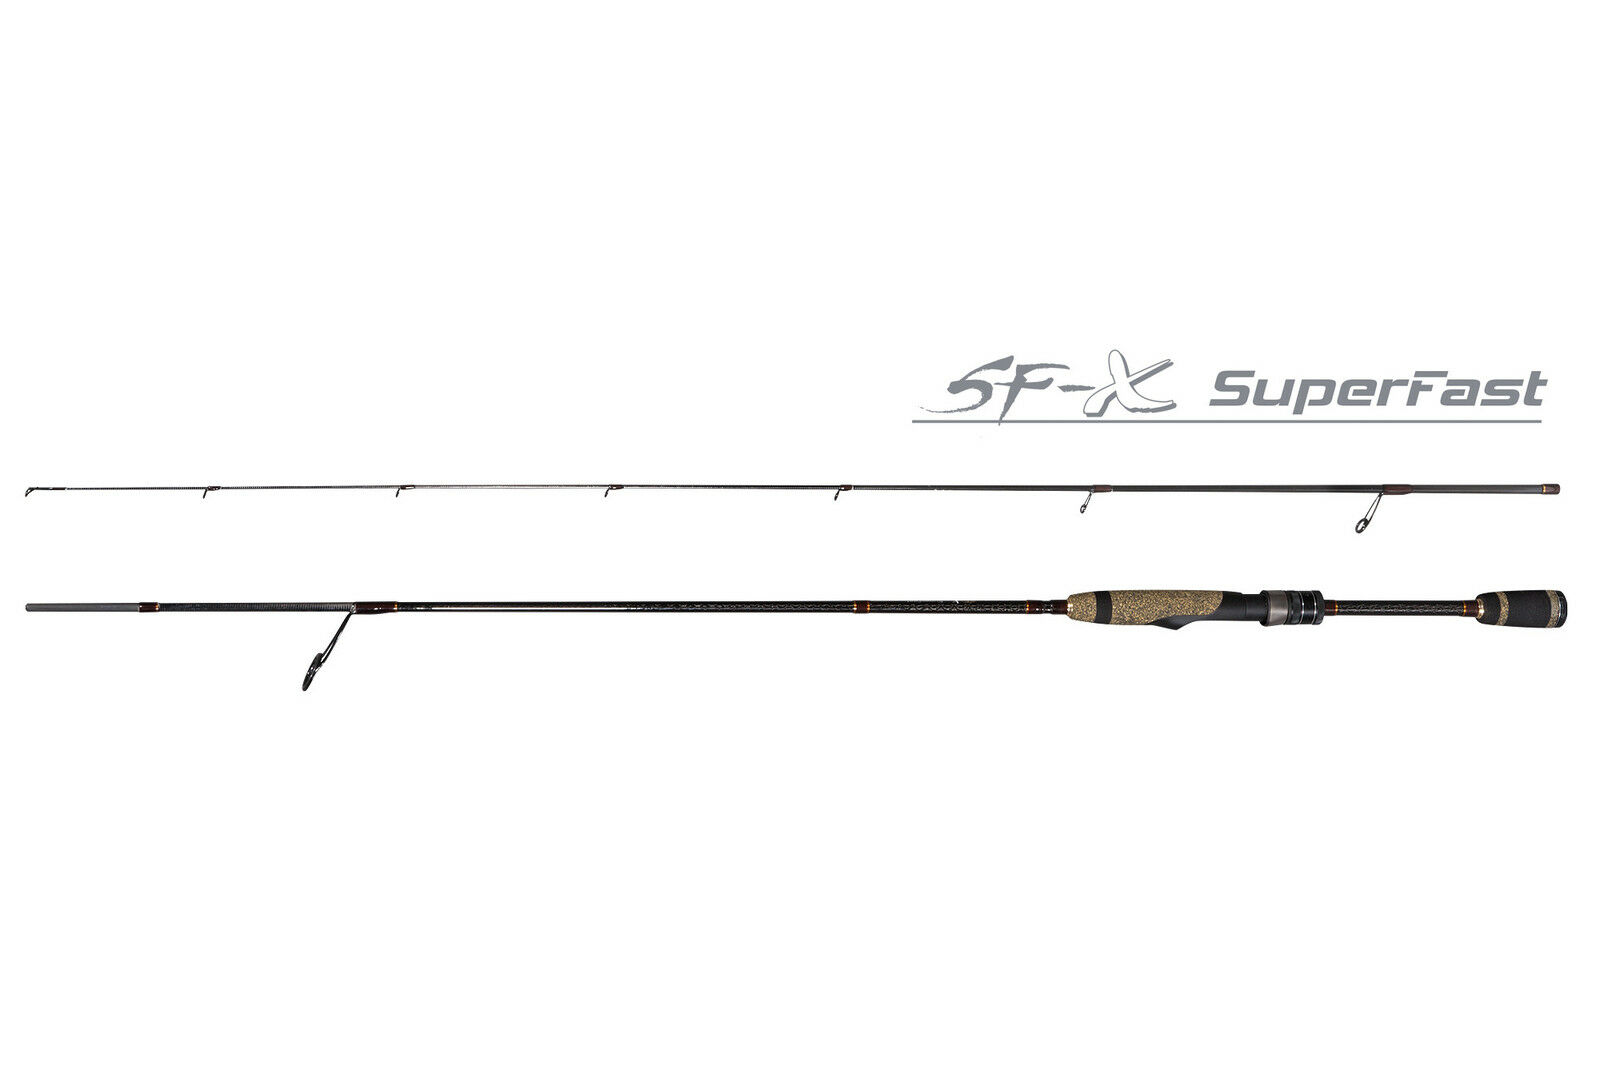 Dragon CXT Spinn SuperFast SF-X / spinning rods Cannes